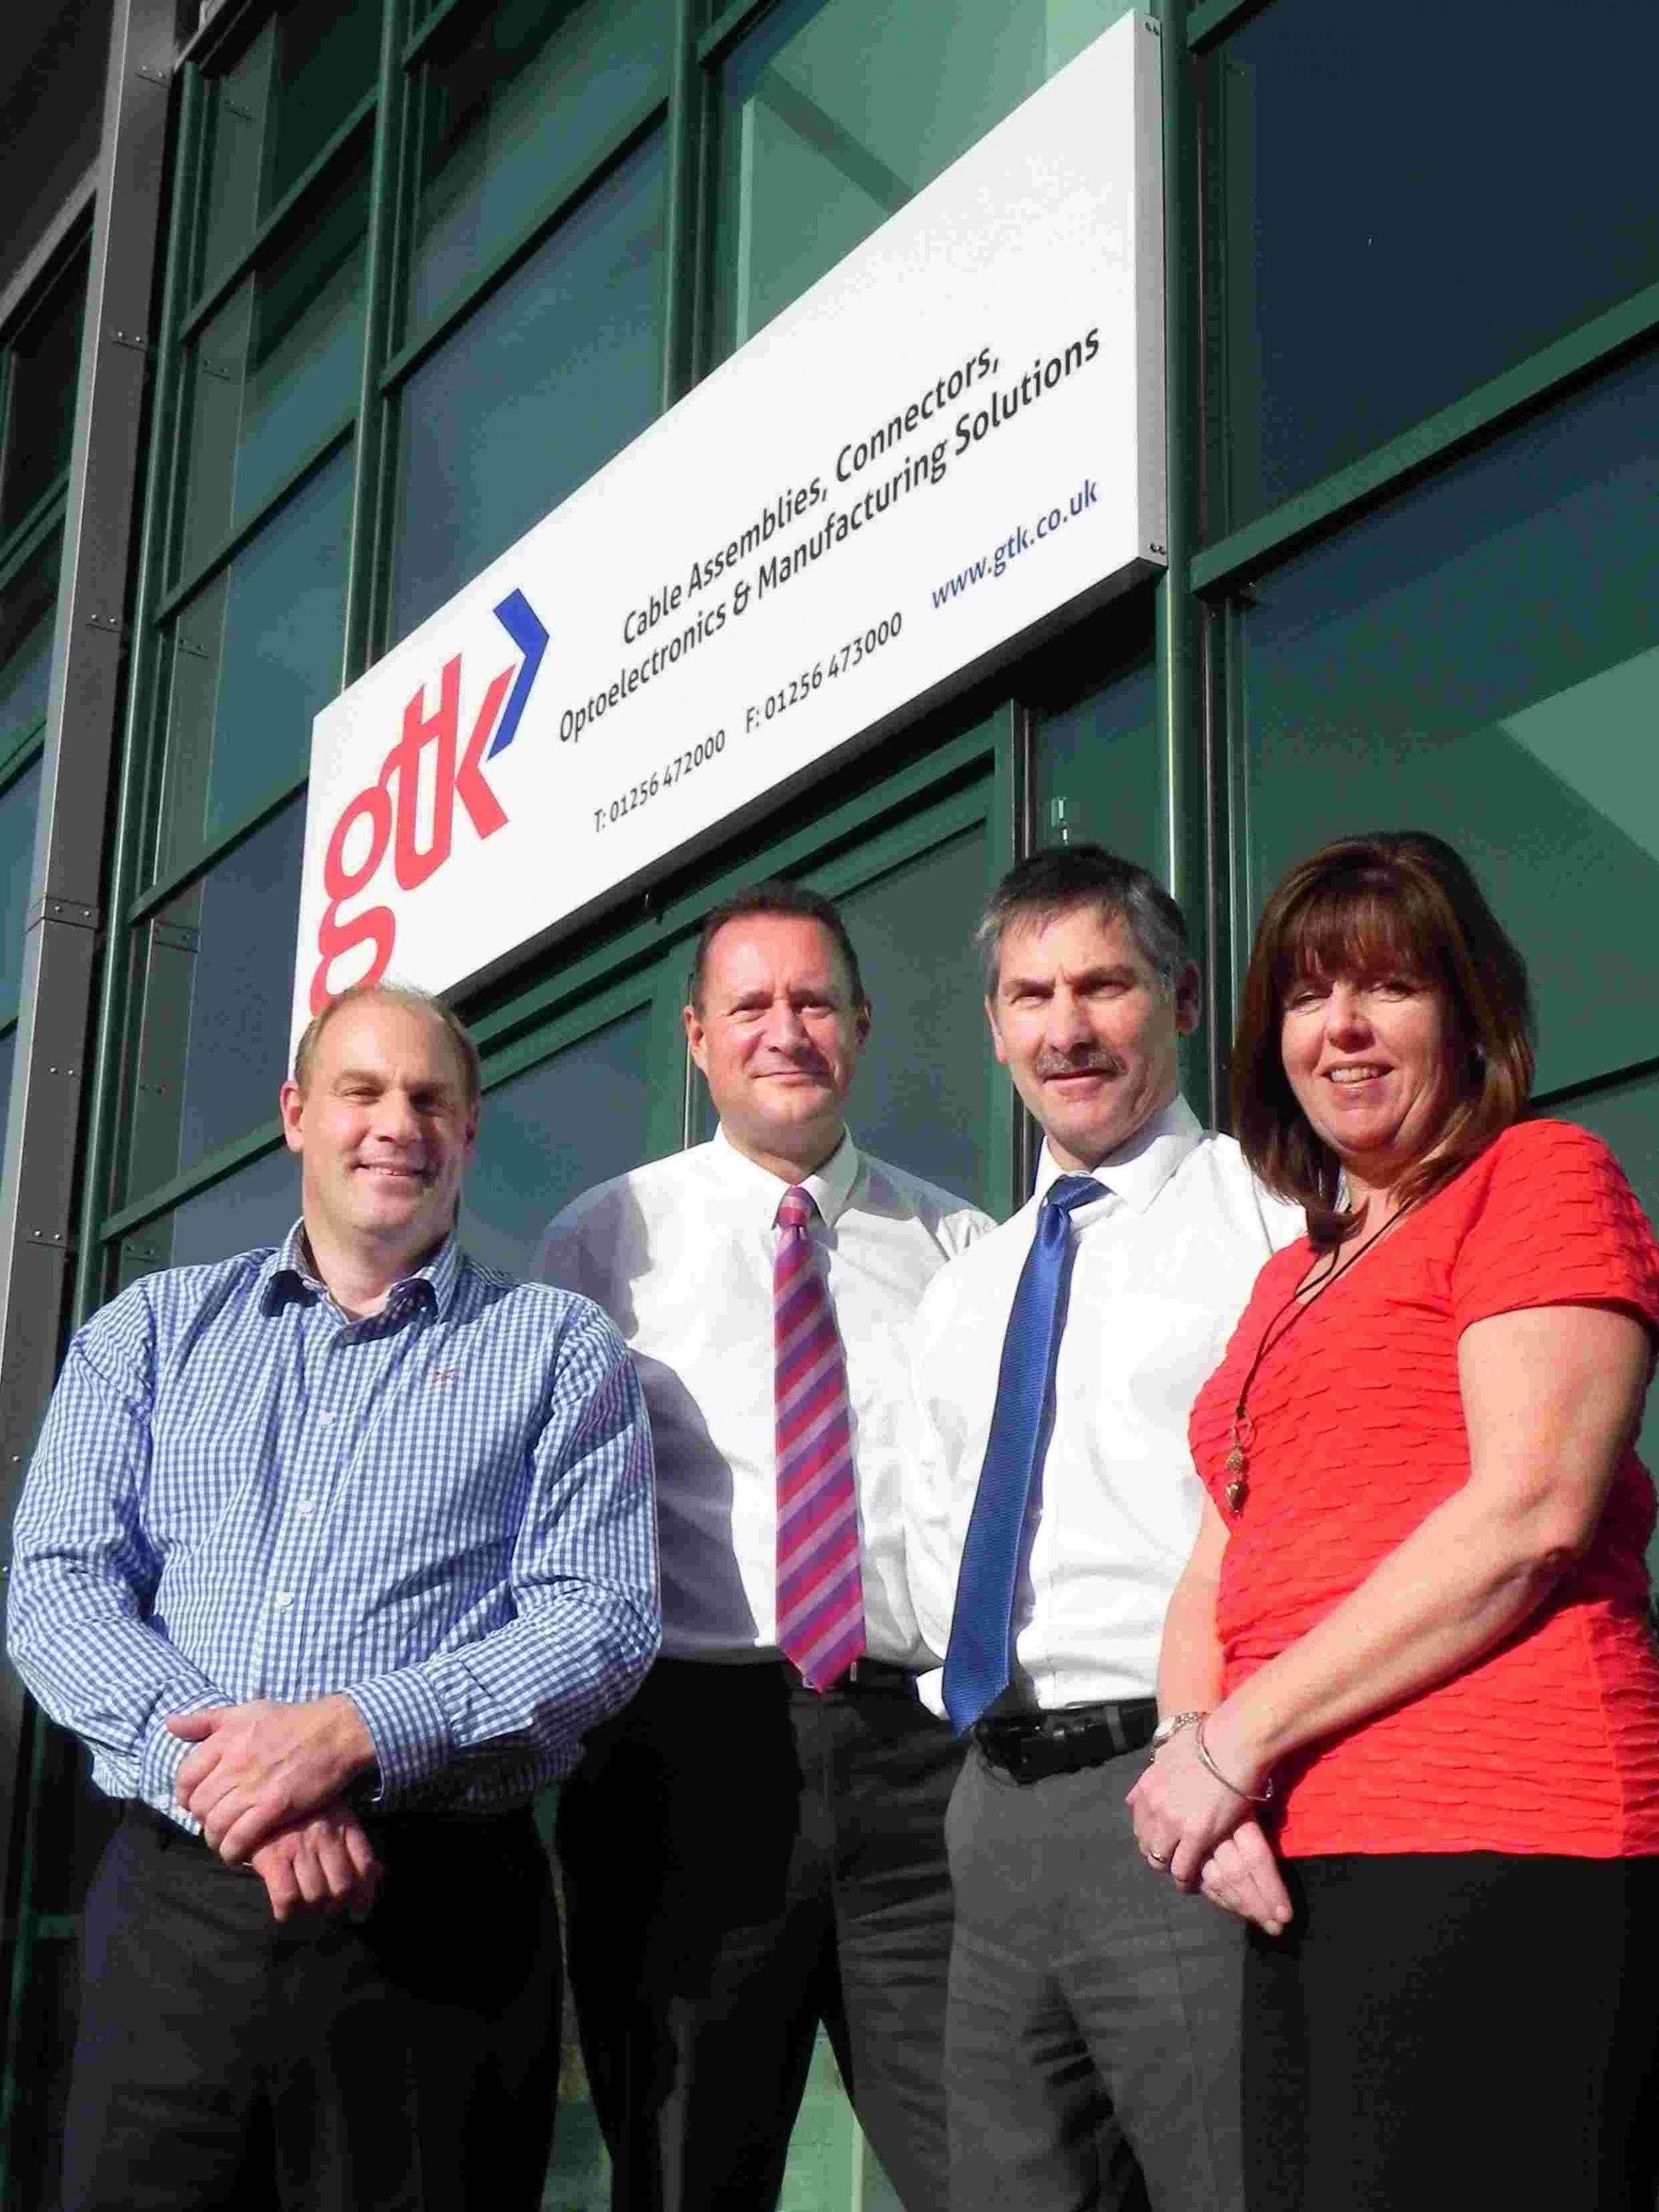 L-R: GTK finance director Fred Edwards, managing director John Morath, operations director Steve Robinson and sales director Julie Arrowsmith